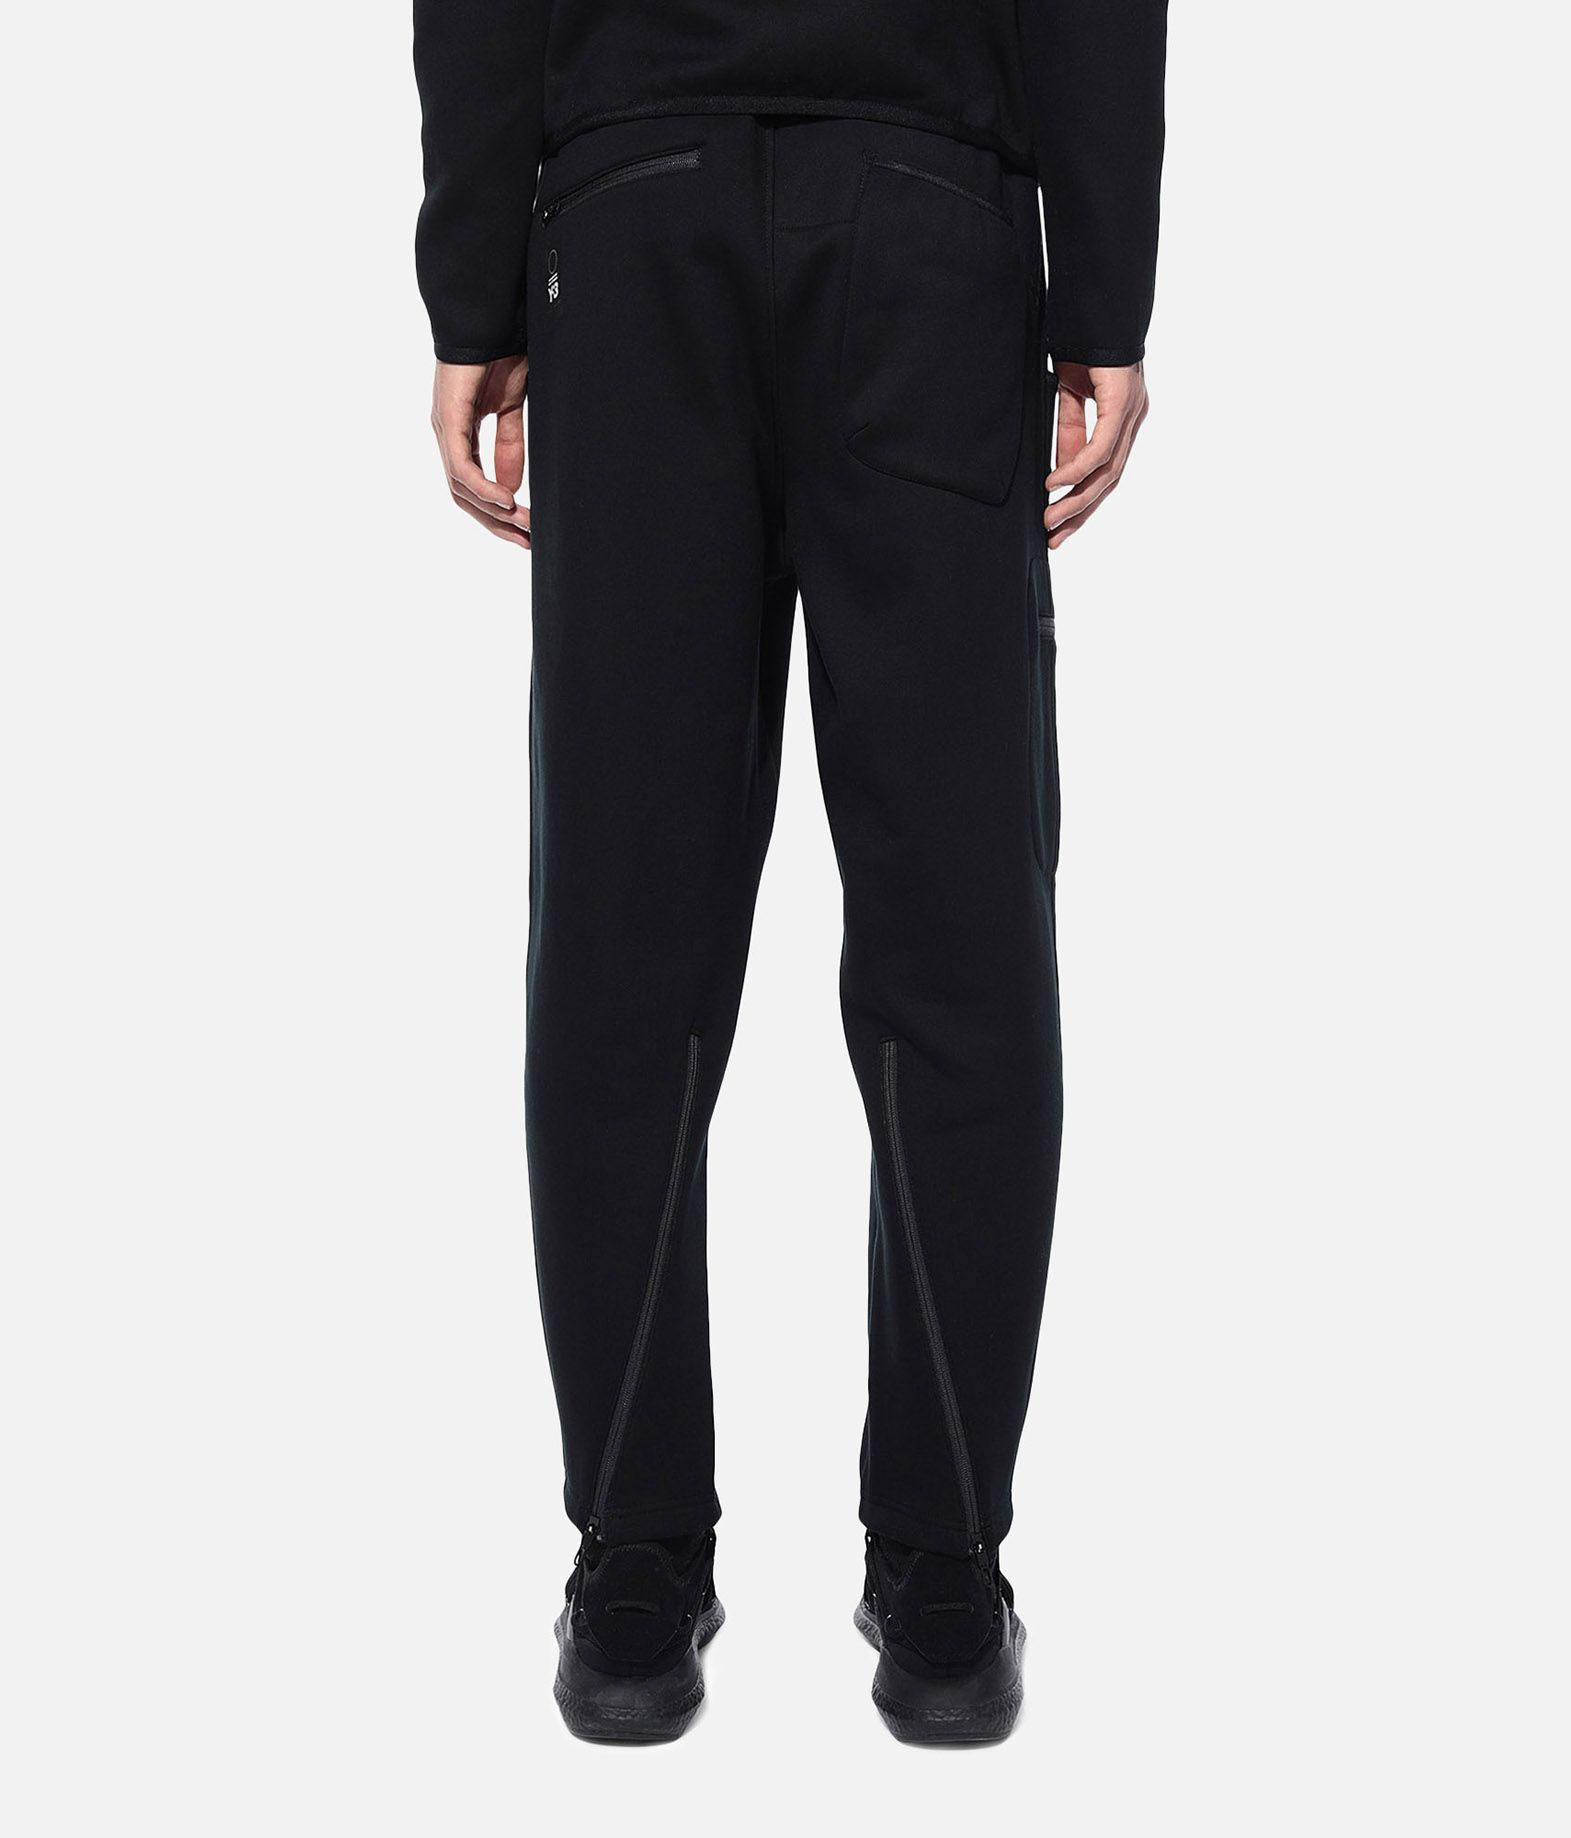 Y-3 Y-3 Binding Cargo Pants Sweatpants Man d